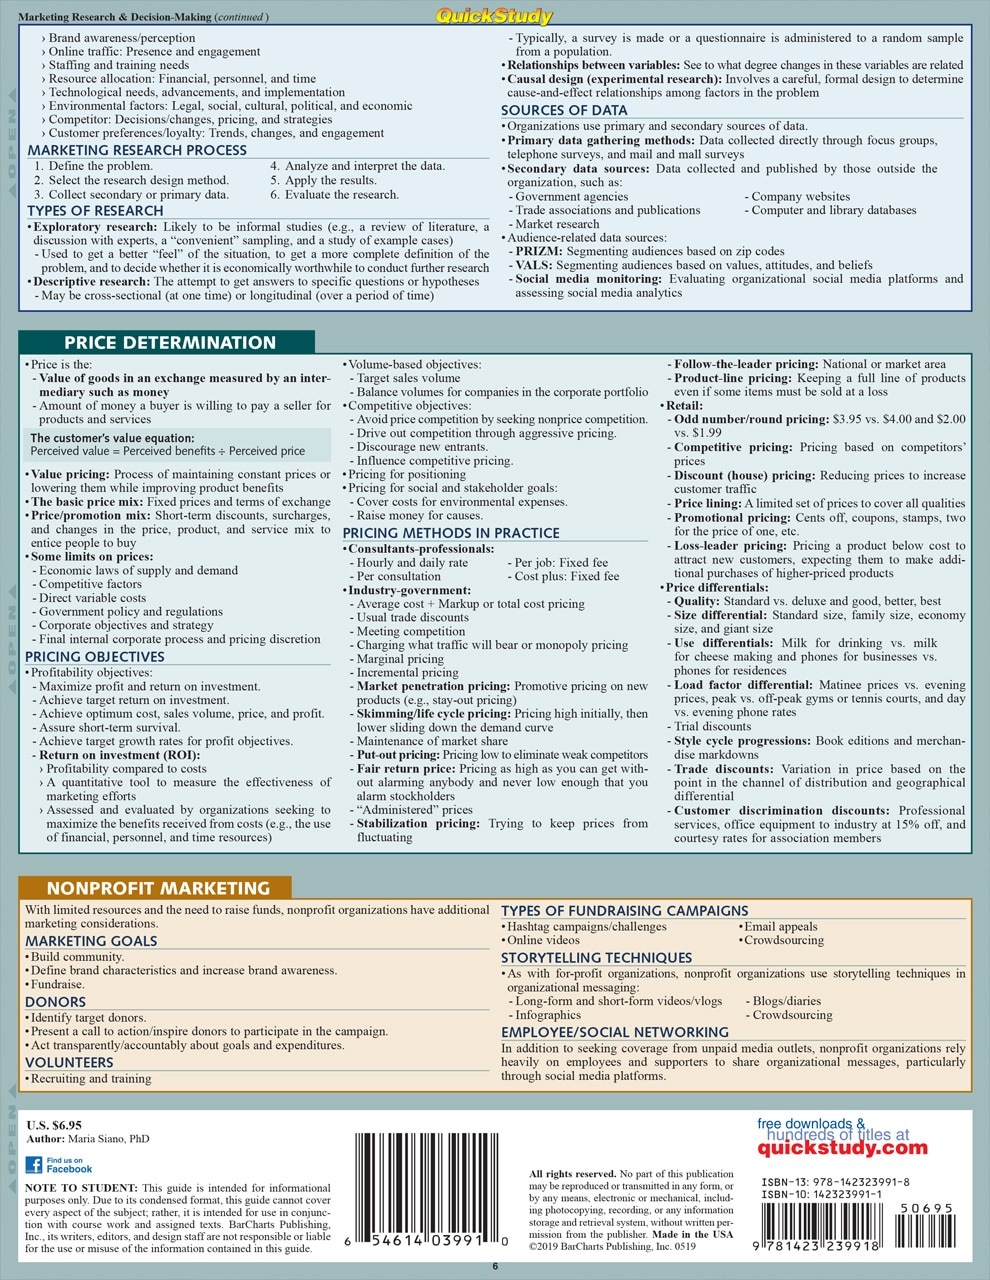 Quick Study QuickStudy Marketing Laminated Reference Guide BarCharts Publishing Business Education Guide Back Image